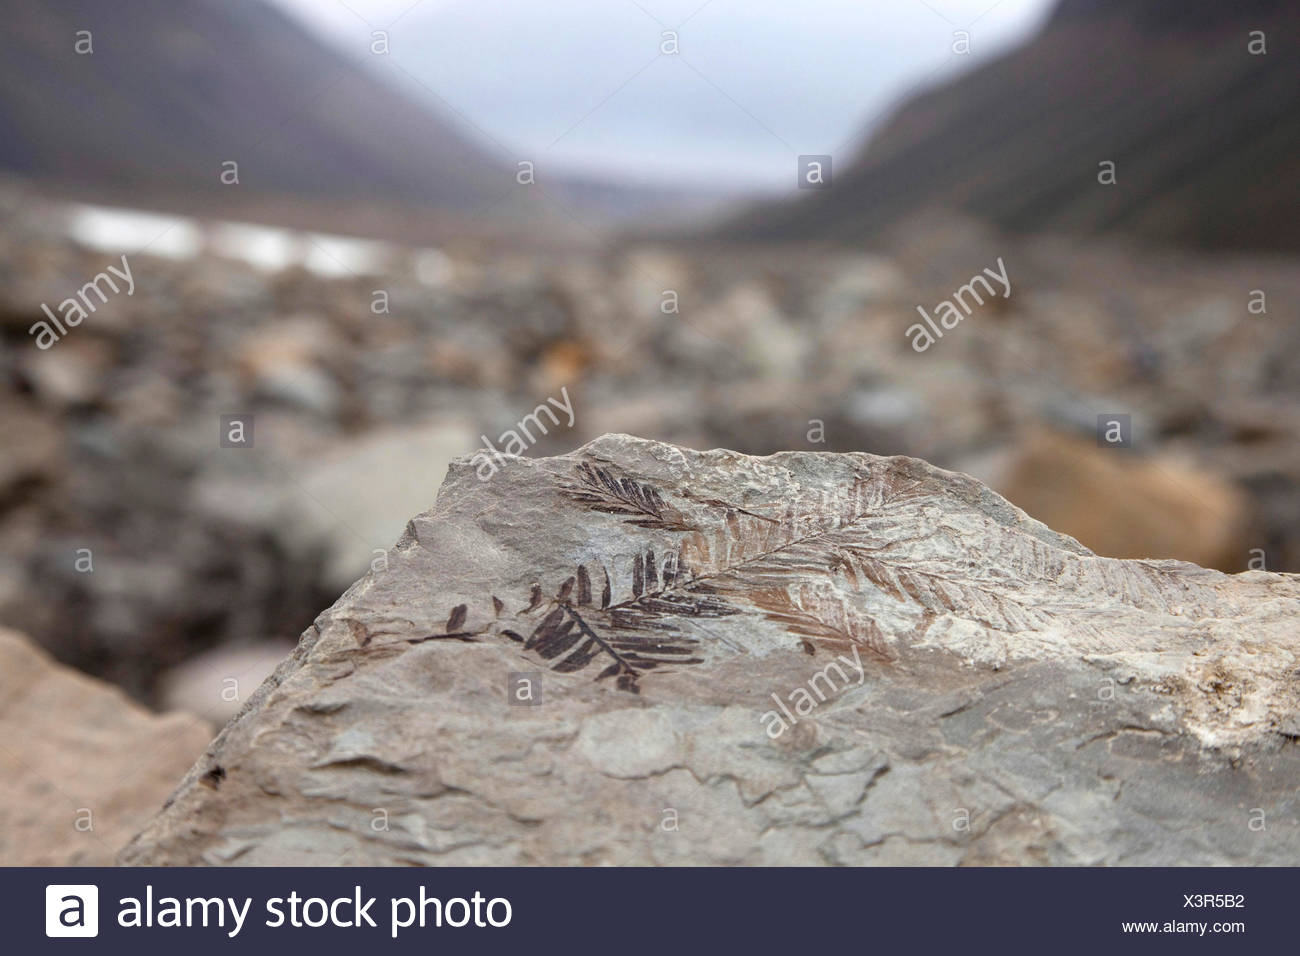 petrified fern at a glacier moraine, Norway, Svalbard, Longyearbyen - Stock Image